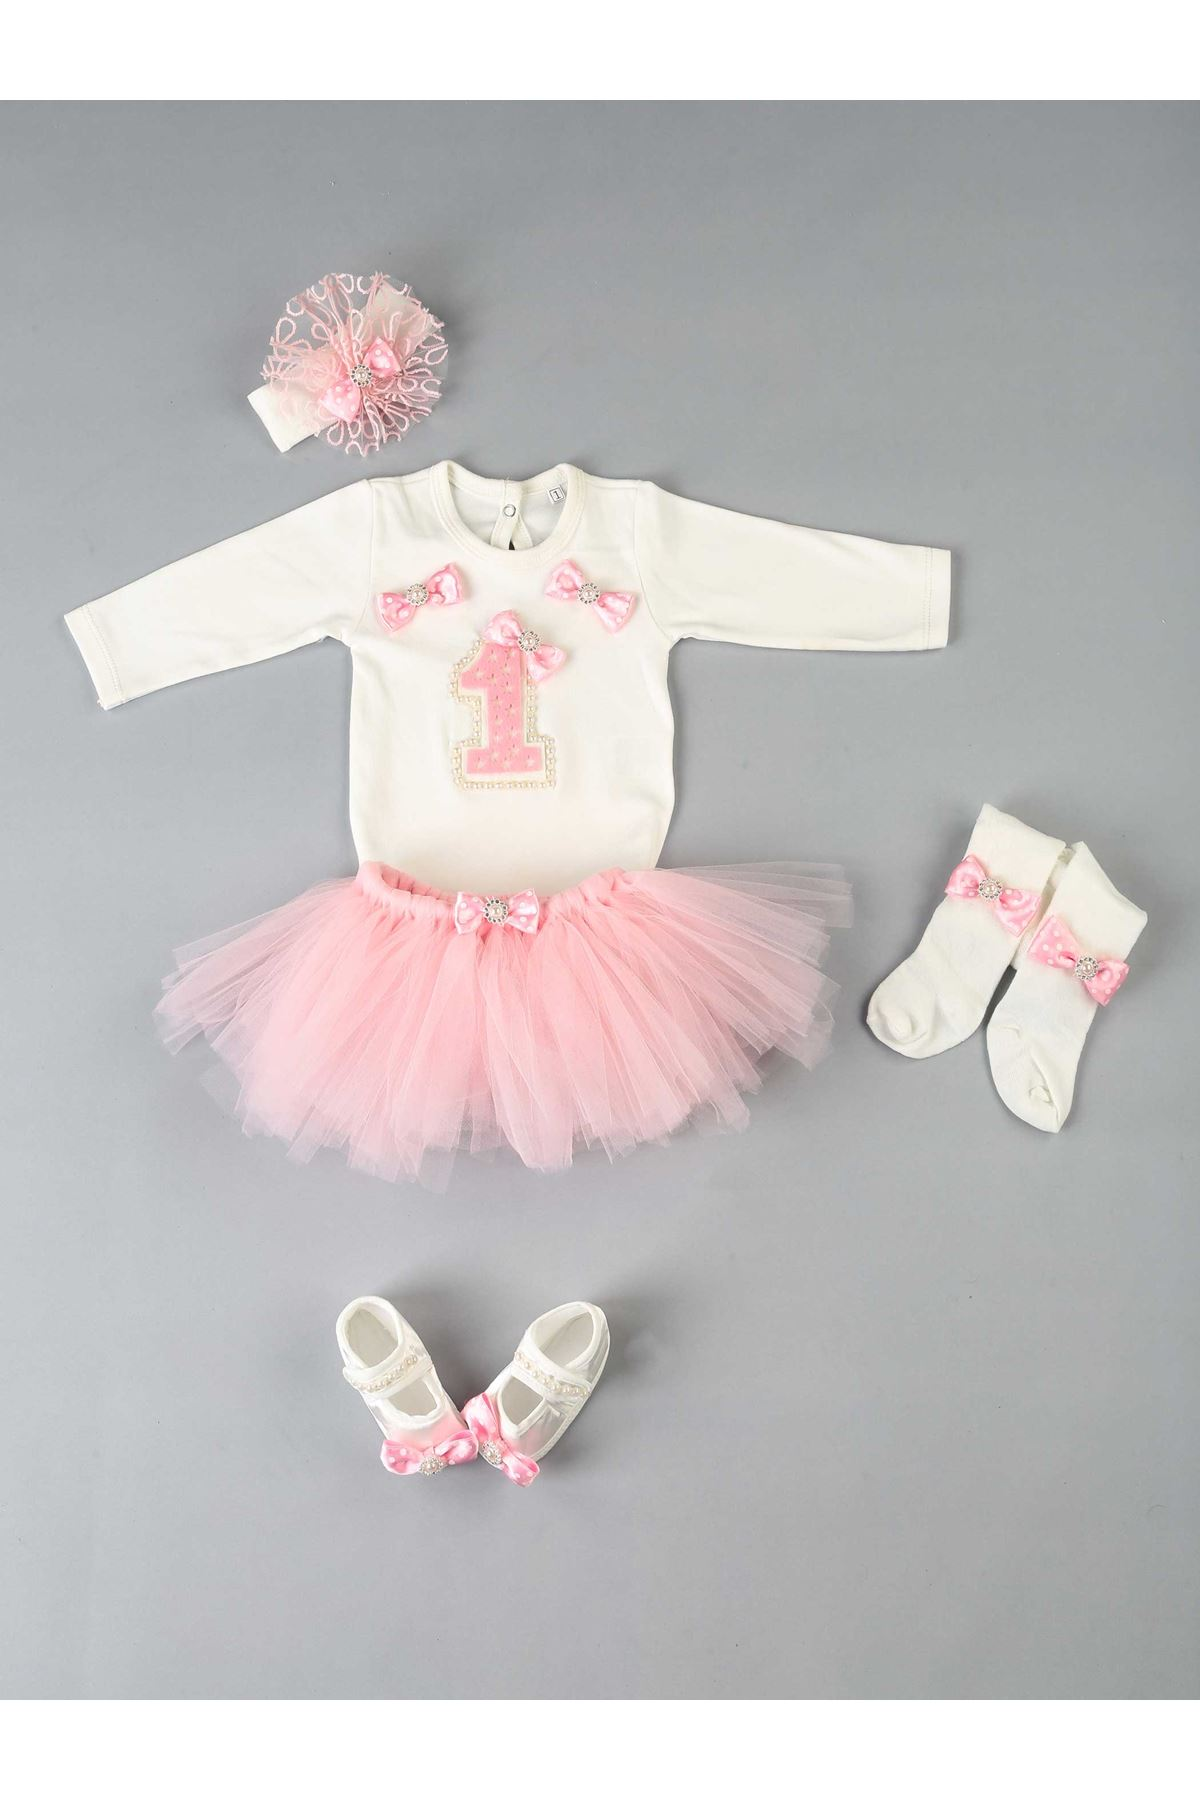 Pink 1 Years Old Baby Girl Tütü Suit